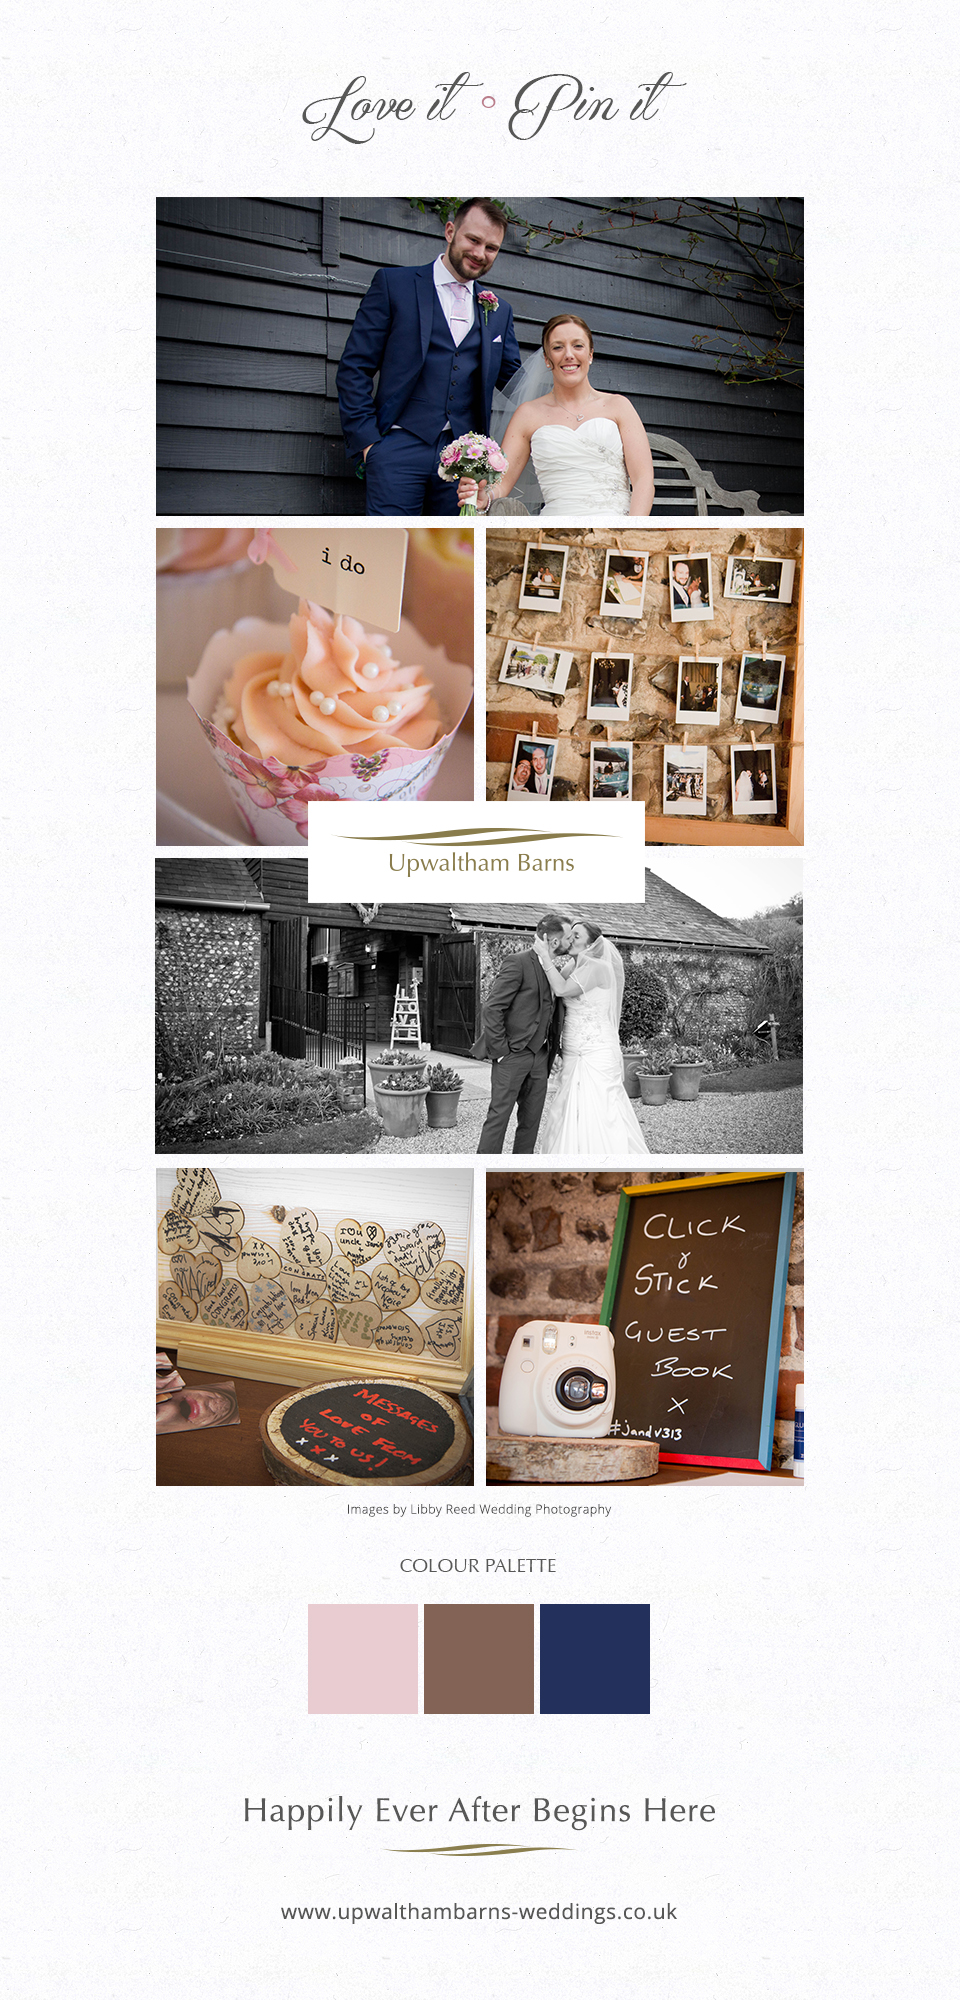 Victoria and Jamie's fun filled wedding at Upwaltham Barns in West Sussex